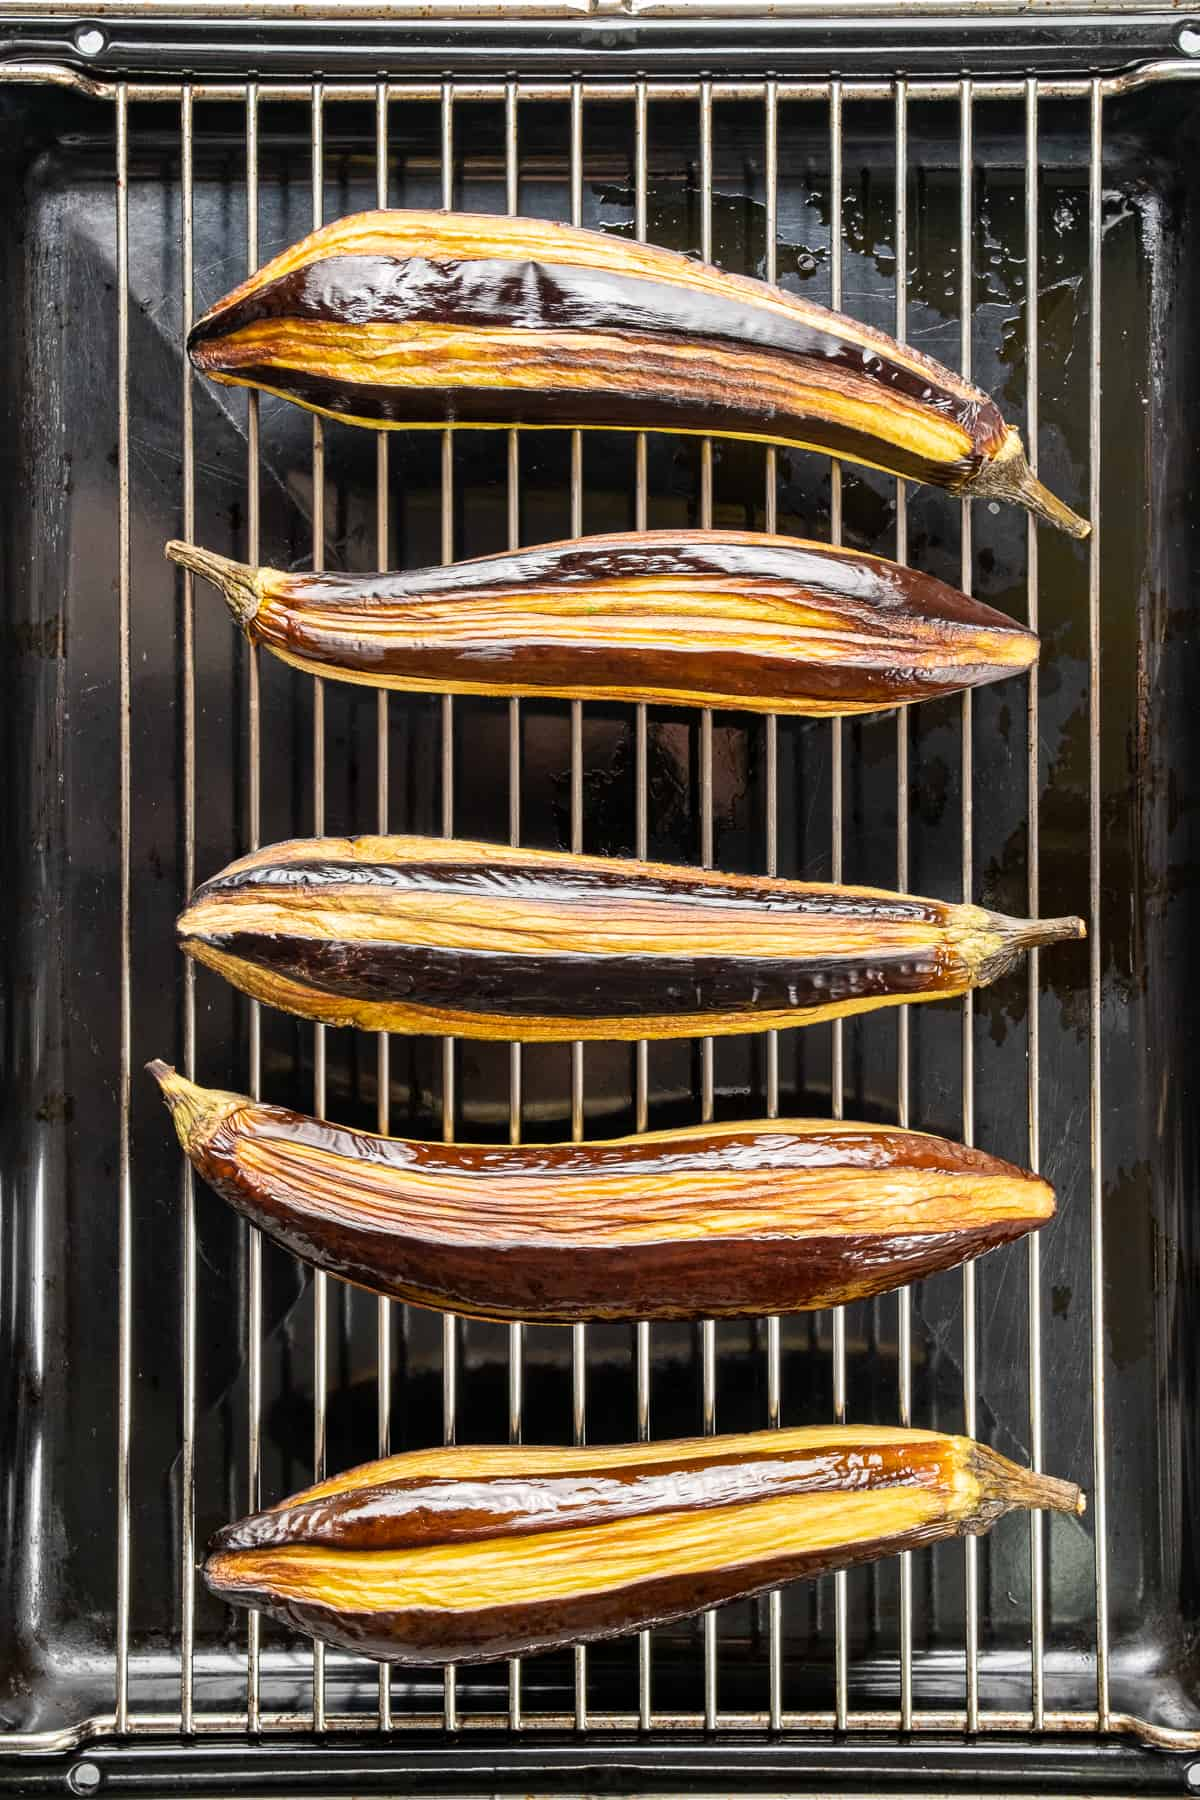 Partly peeled whole eggplants roasted on an oven grill rack.